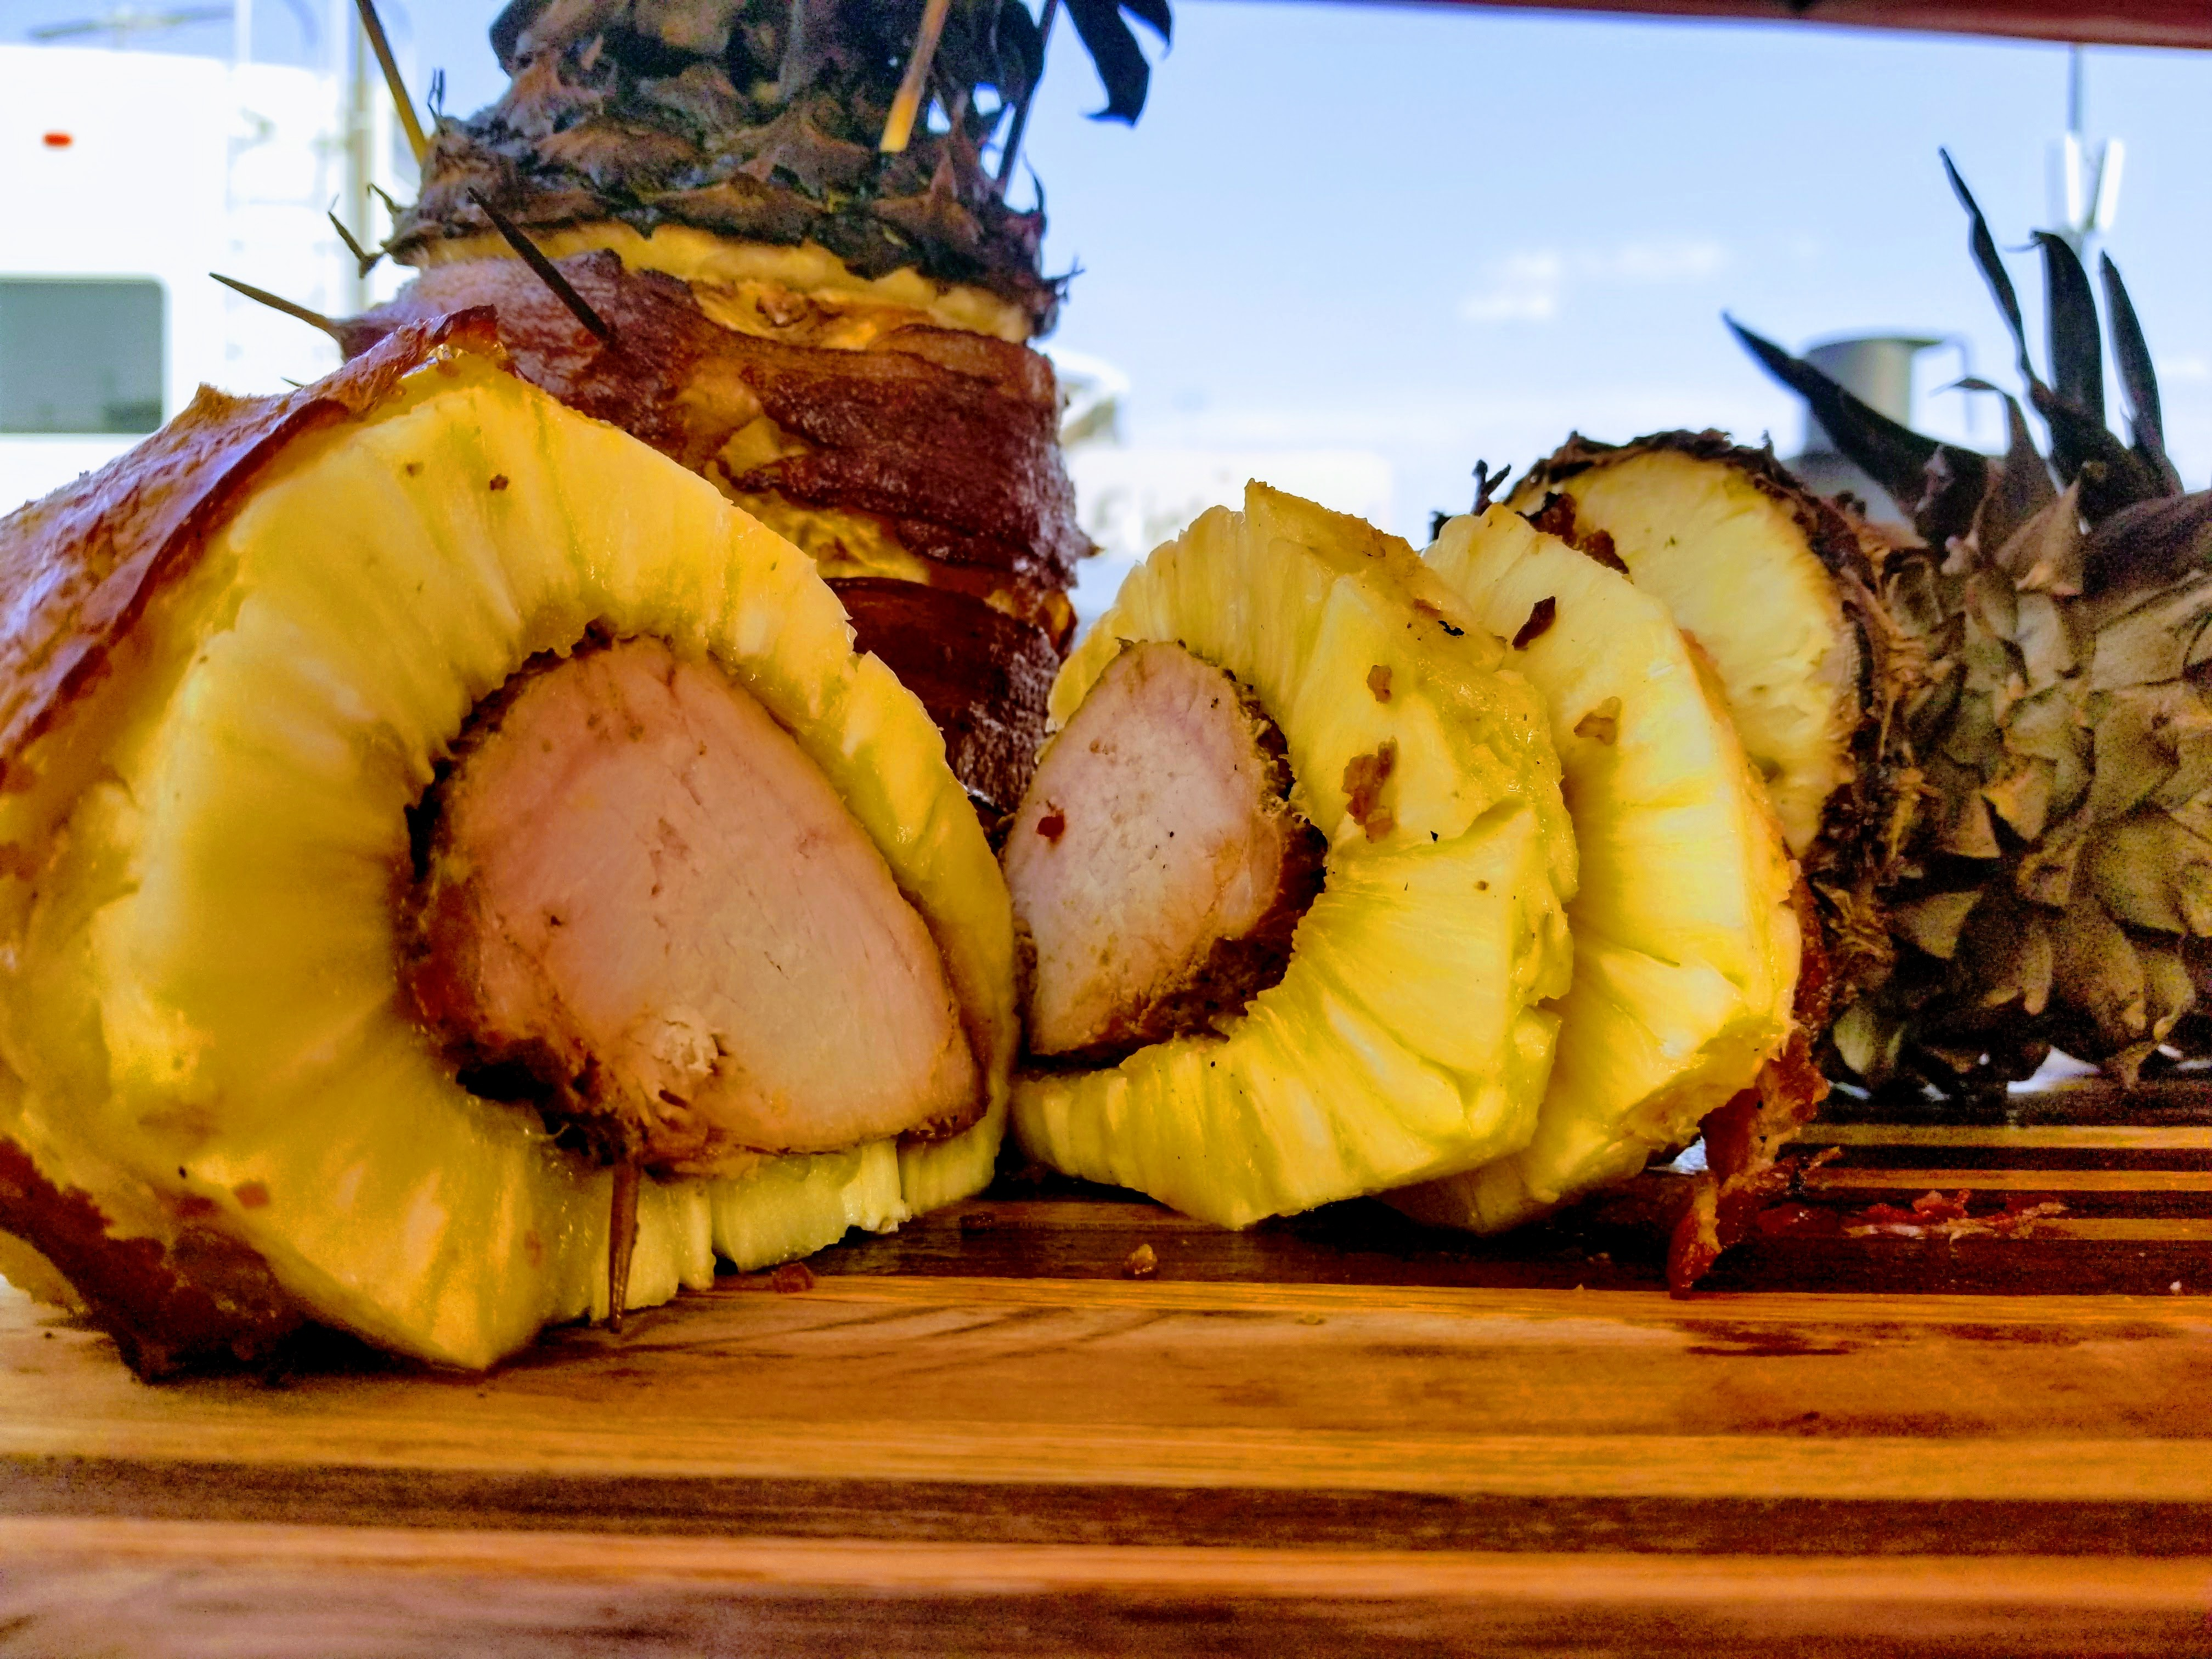 Smoked Swineapple – Pineapple stuffed with Pork Loin